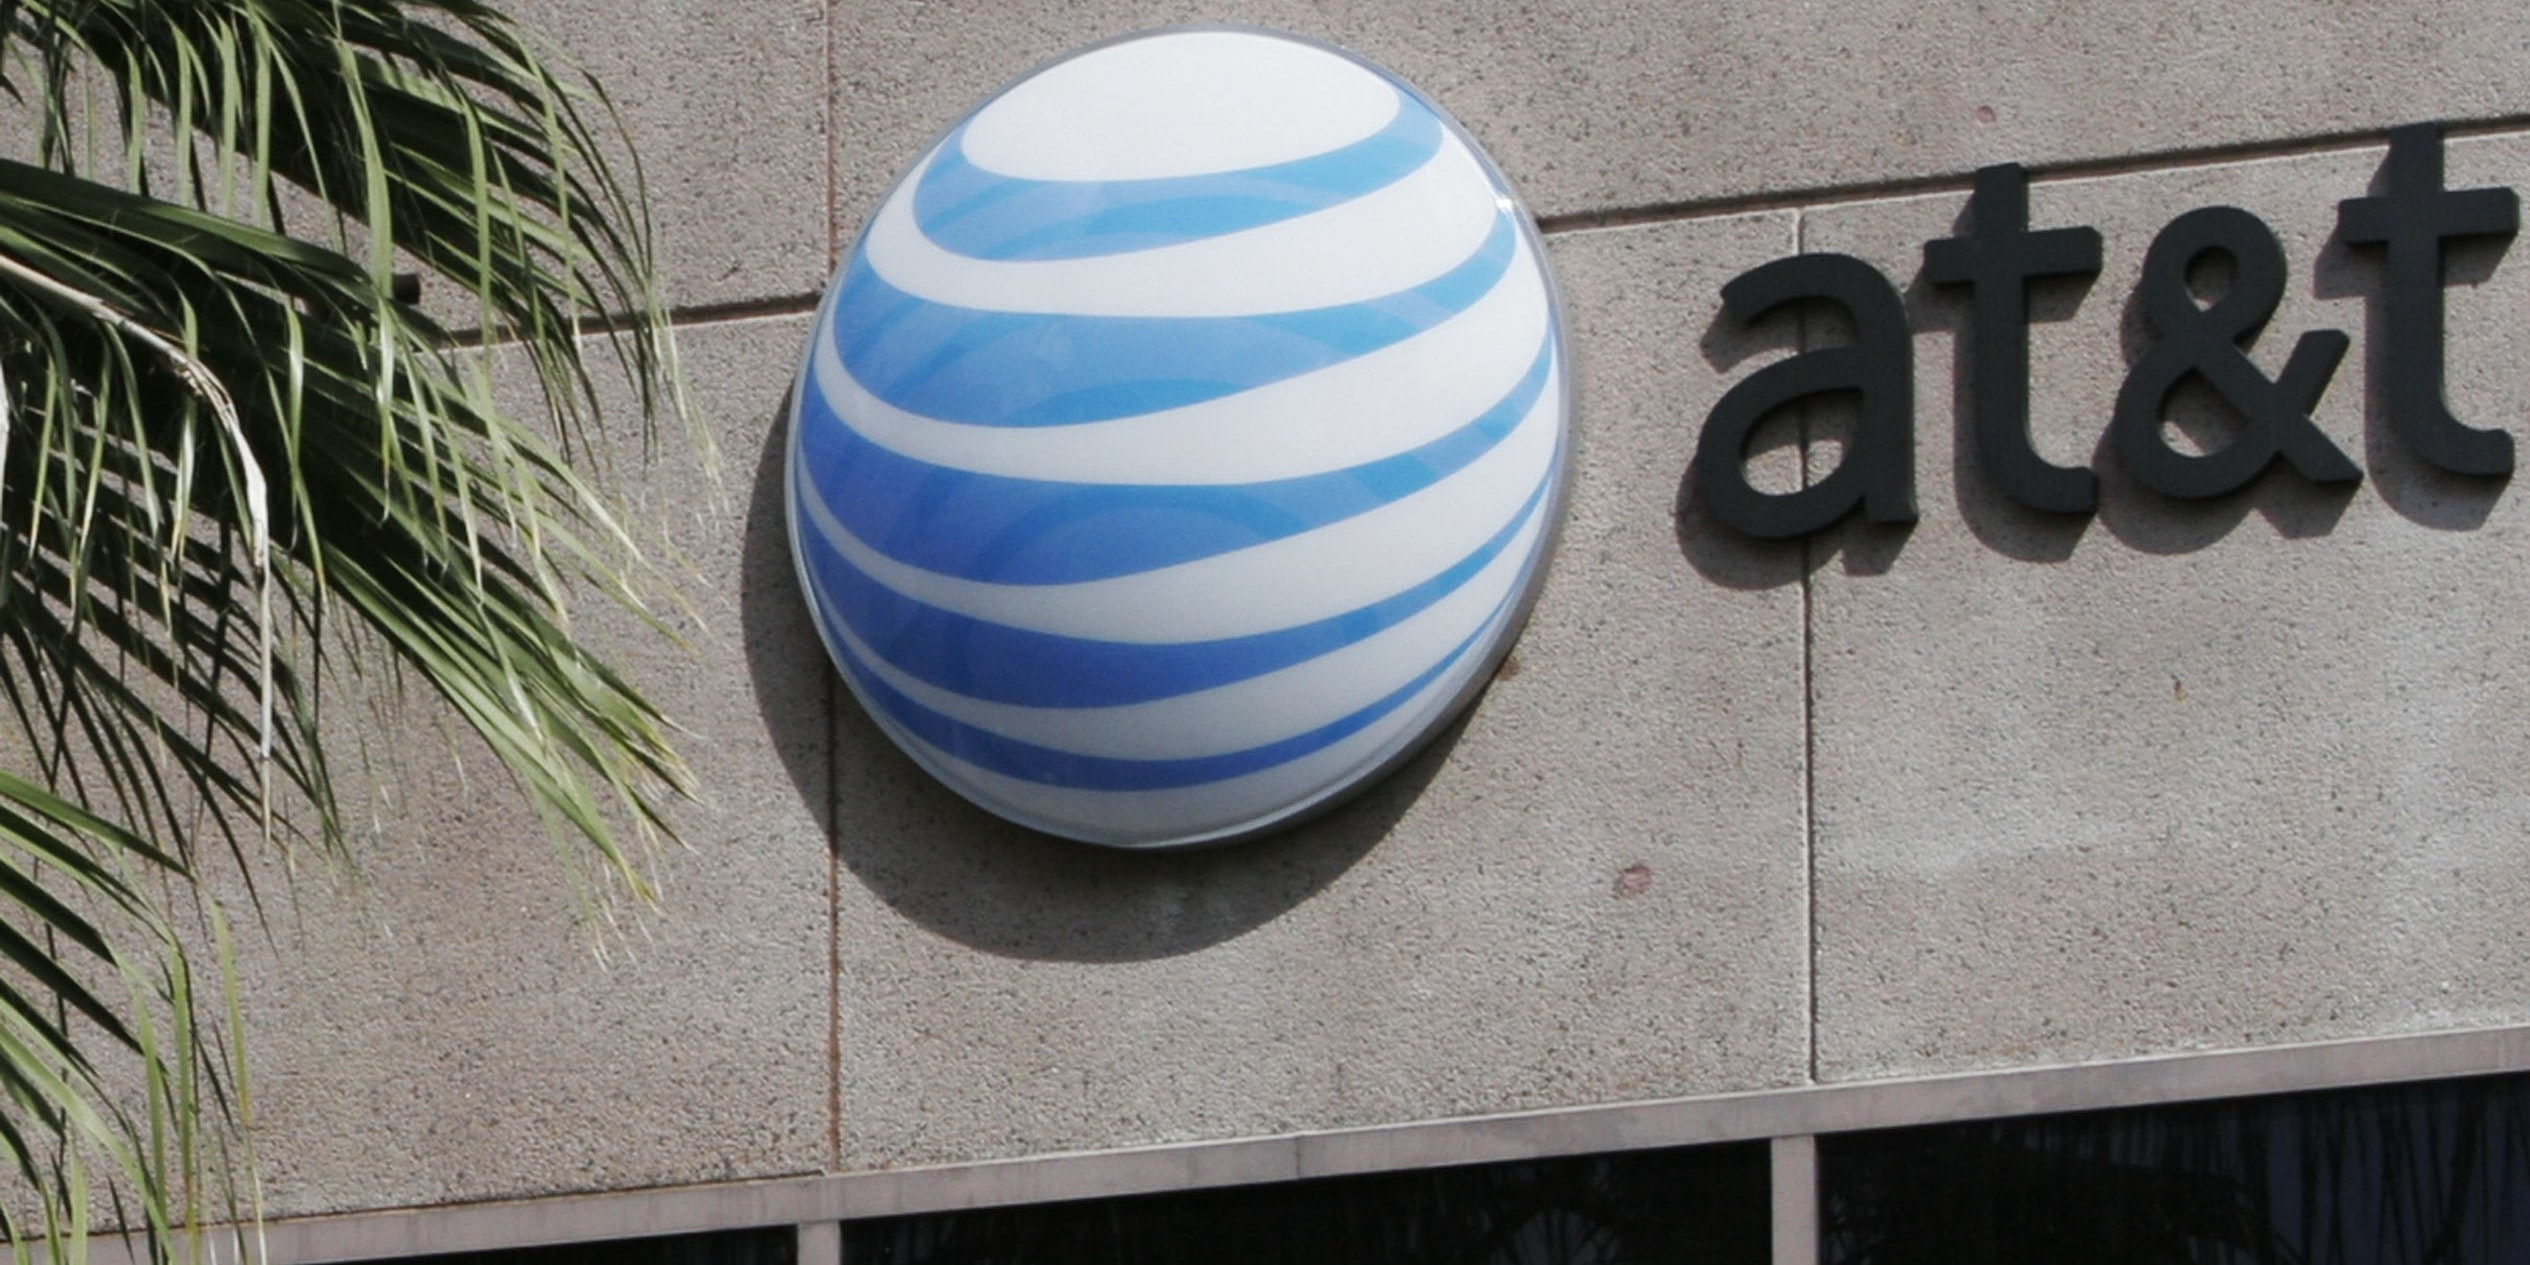 SAN ANTONIO, TX  - MARCH 6:  The AT&T Communications  Inc. corporate headquarters building is seen March 6, 2006 in San Antonio, Texas. AT&T announced plans to acquire BellSouth in a deal valued at approximately $67 billion.  (Photo by Toby Jorrin/Getty Images)